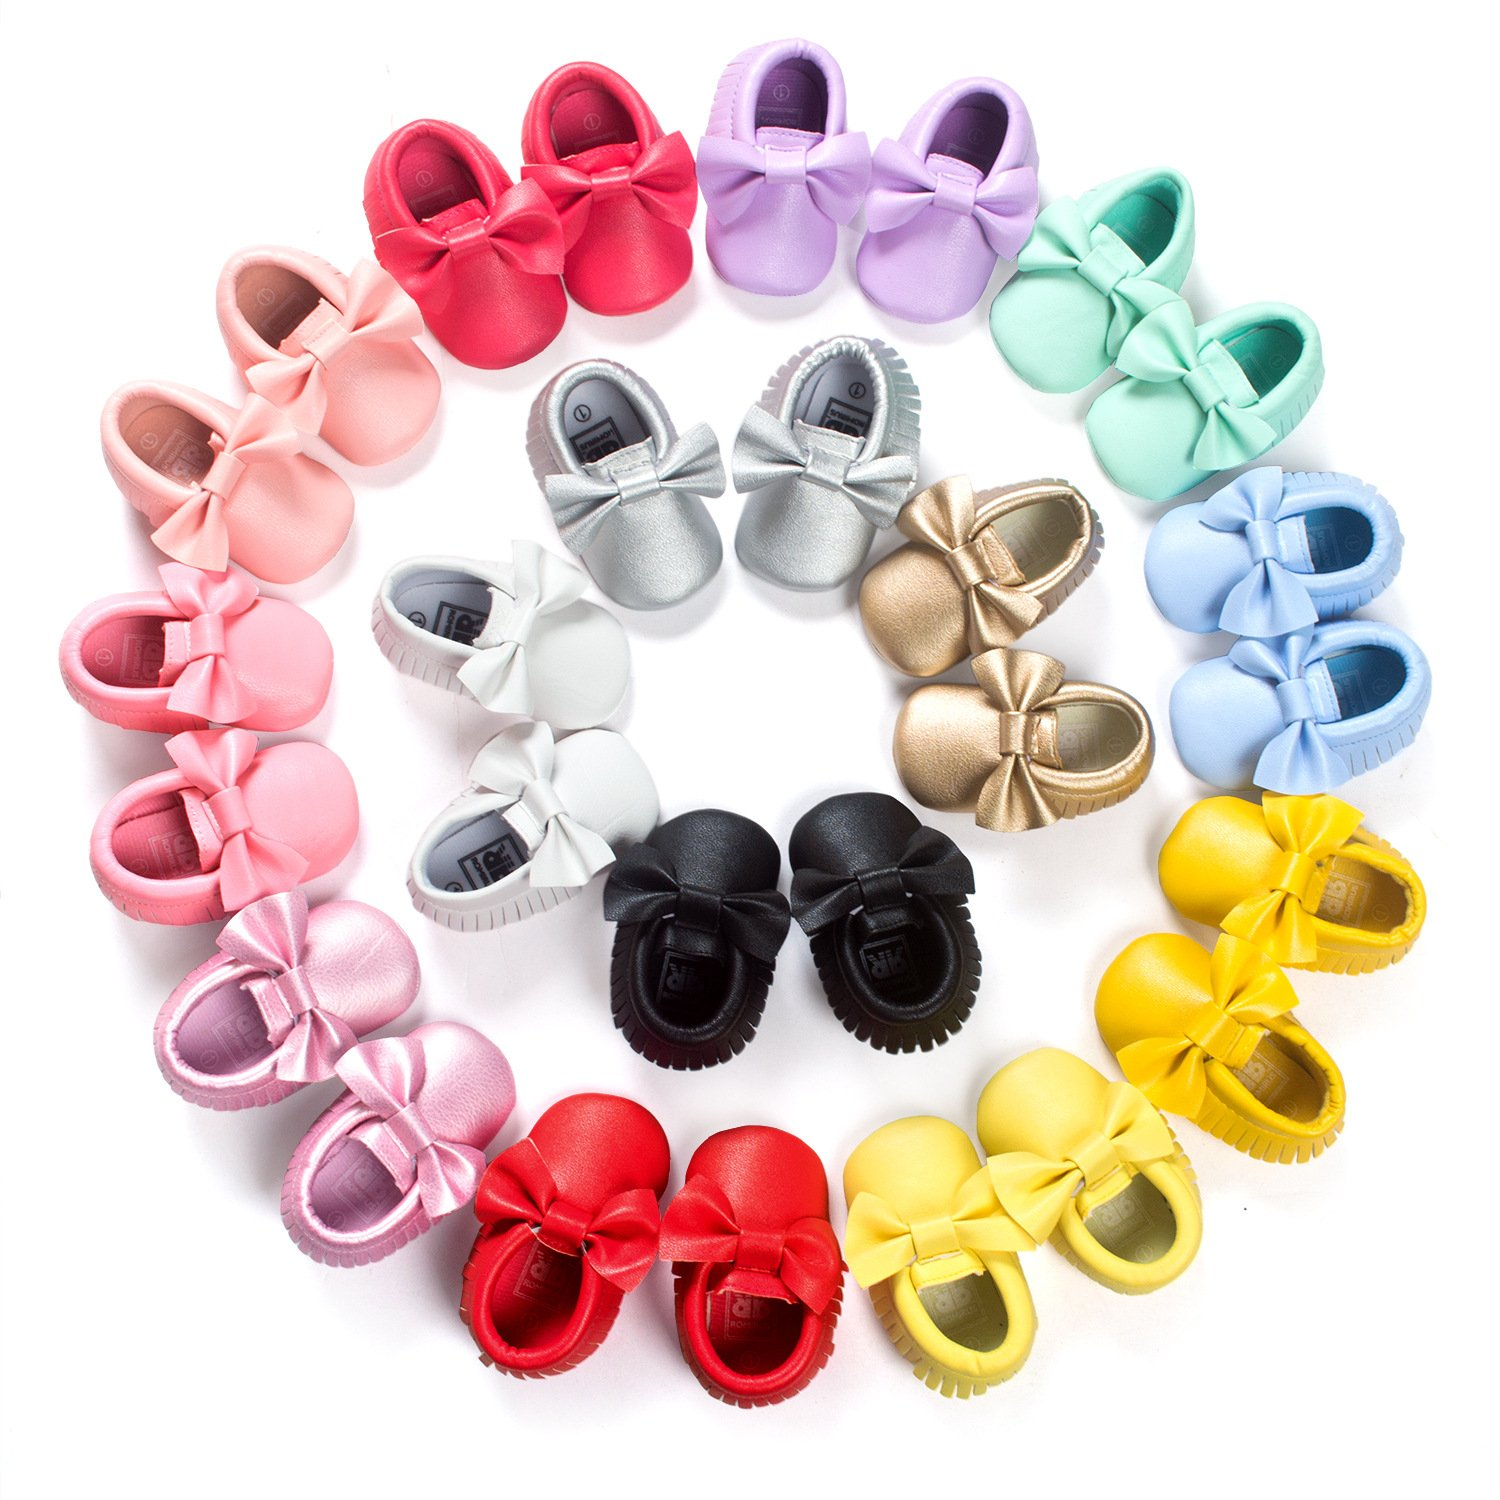 C&H Baby boy girl soft cute tassel bow tassels baby cot shoes baby shoes (11cm(0-6months), 5107 golden) by C&H (Image #6)